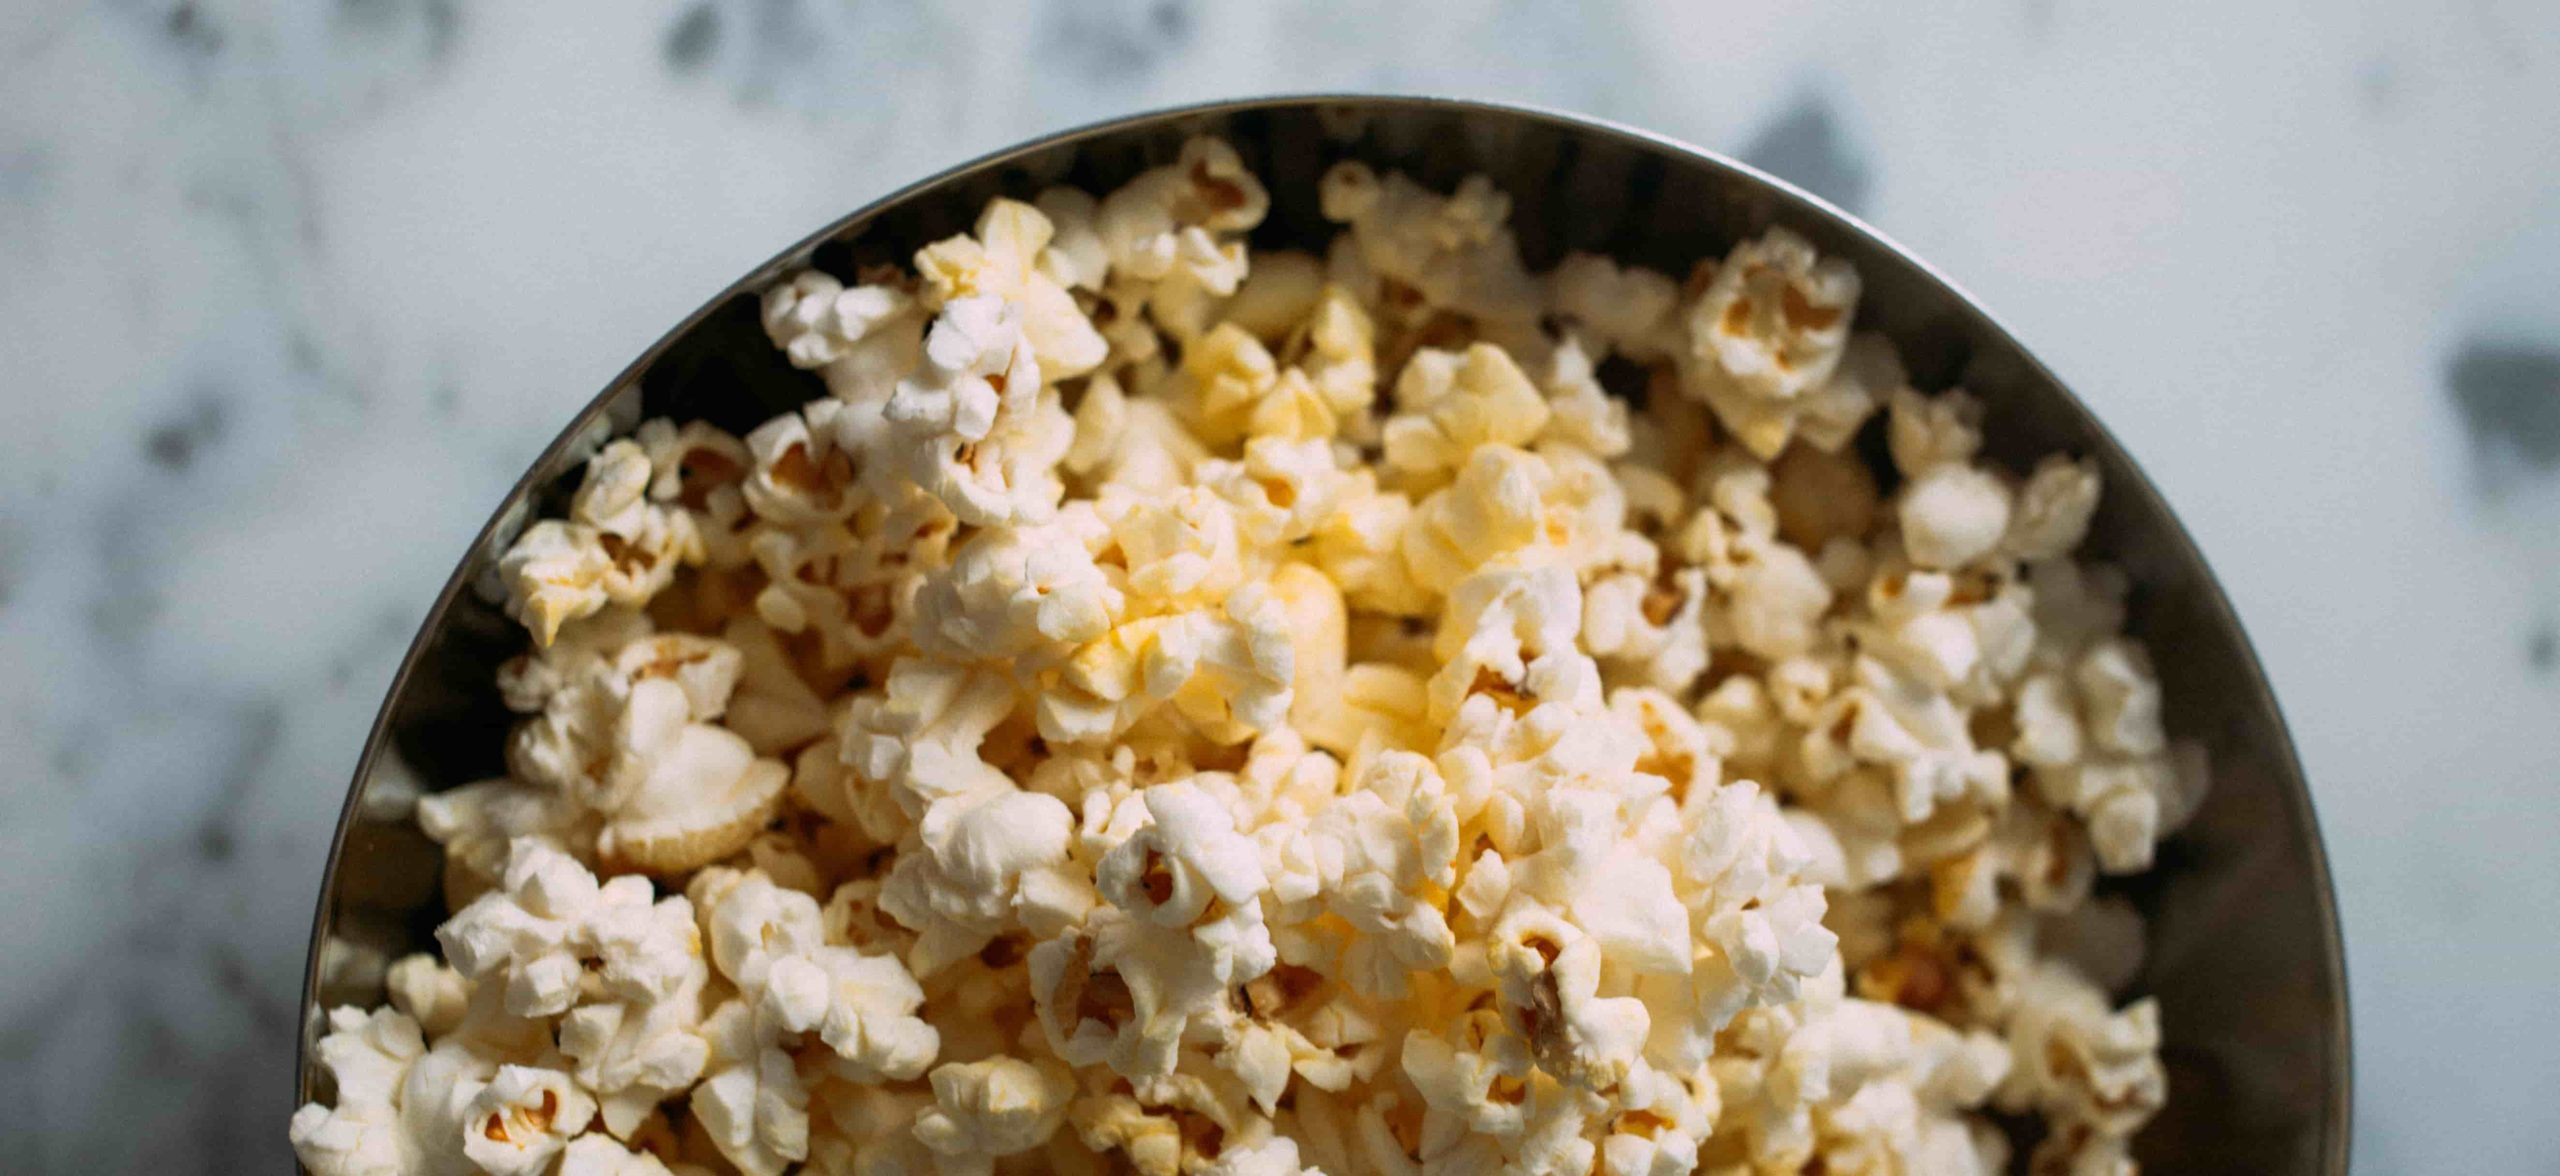 Does popcorn give you energy